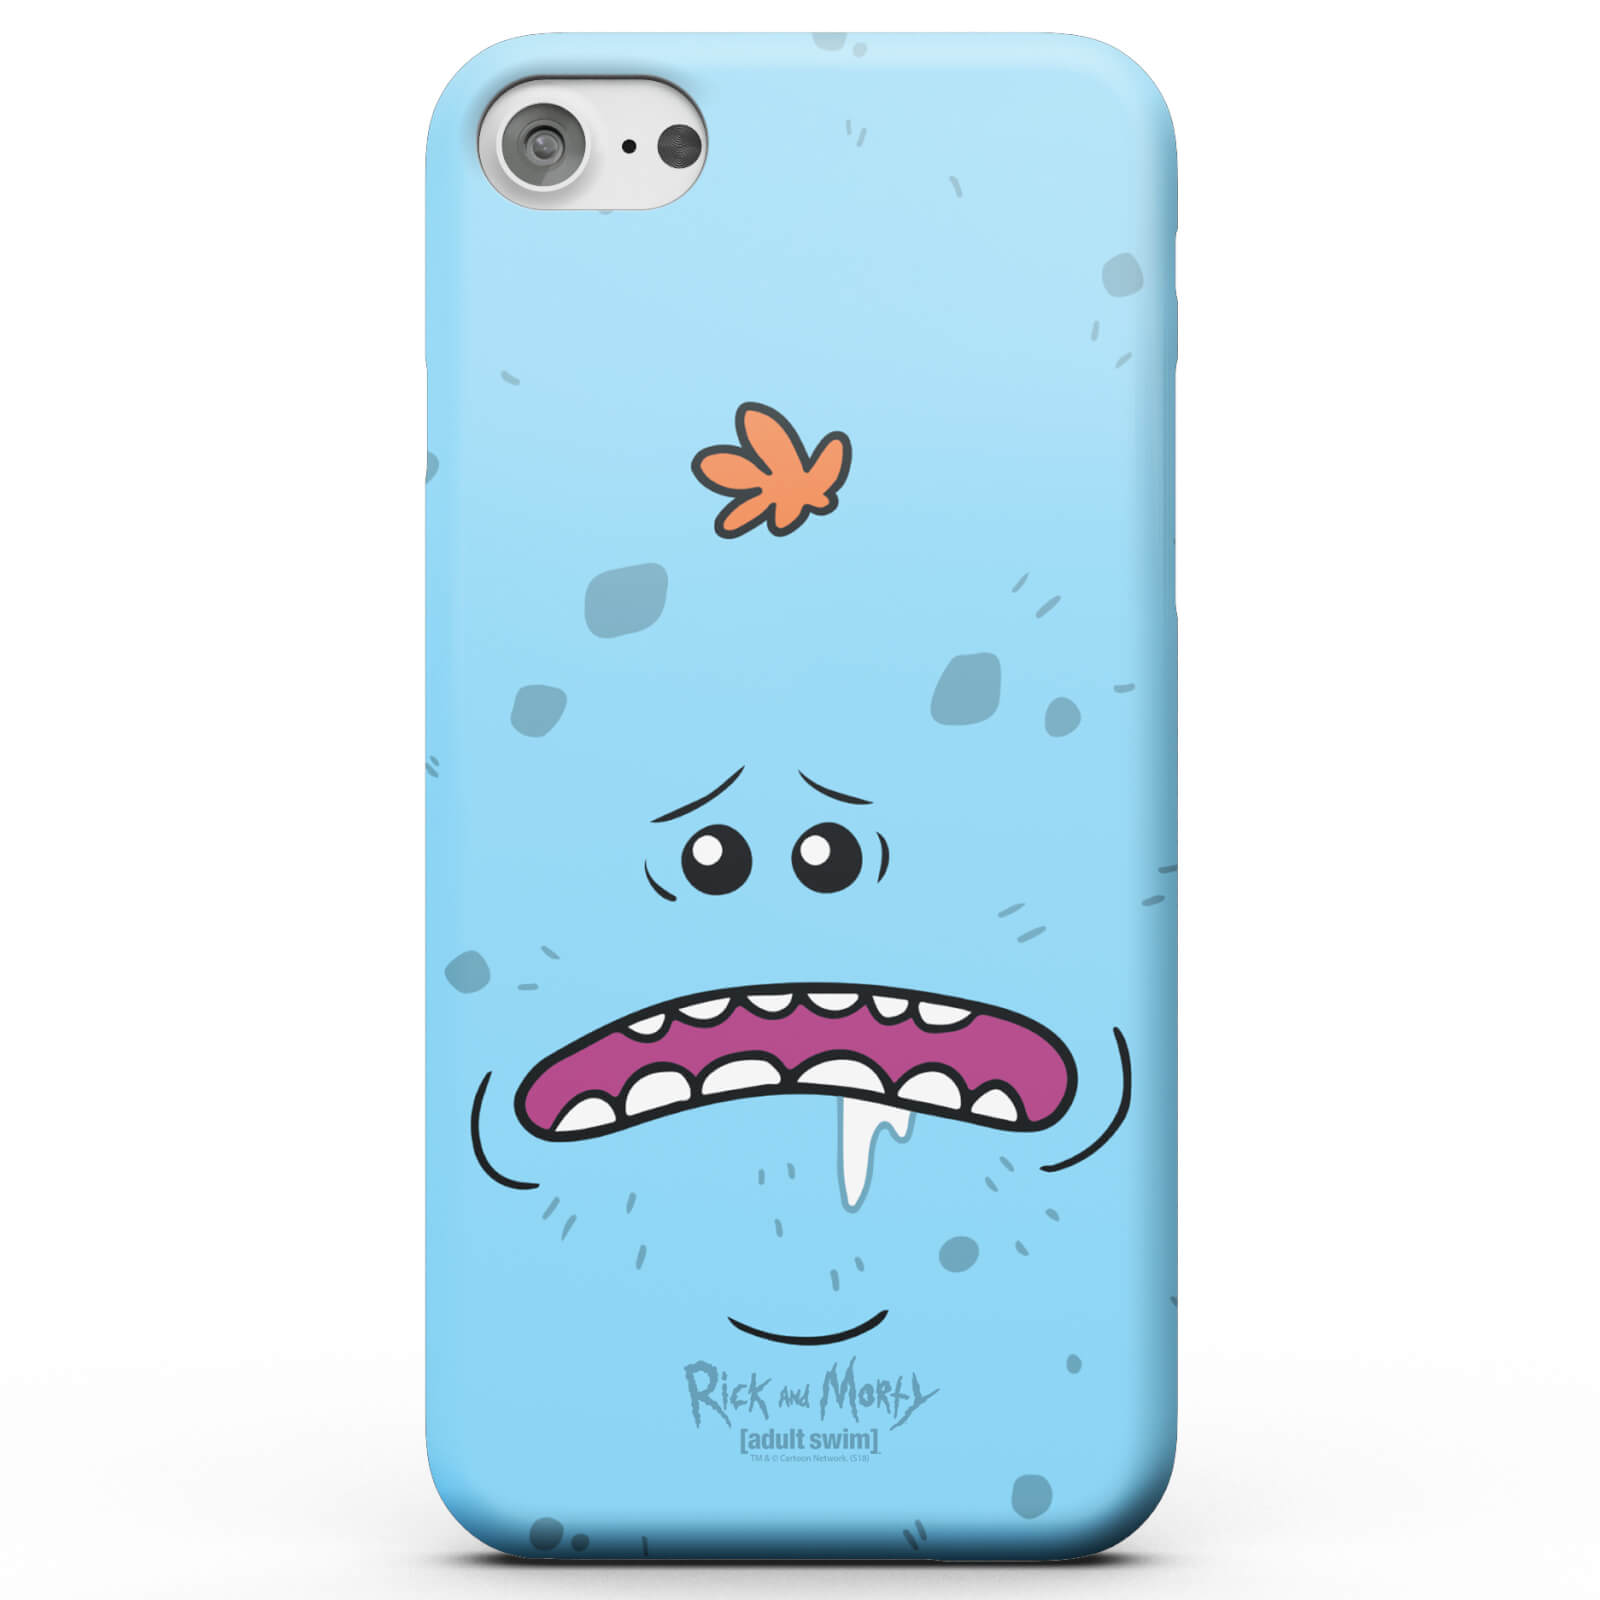 Funda Móvil Rick y Morty Mr Meeseeks para iPhone y Android - iPhone 7 - Carcasa doble capa - Mate de Rick and Morty